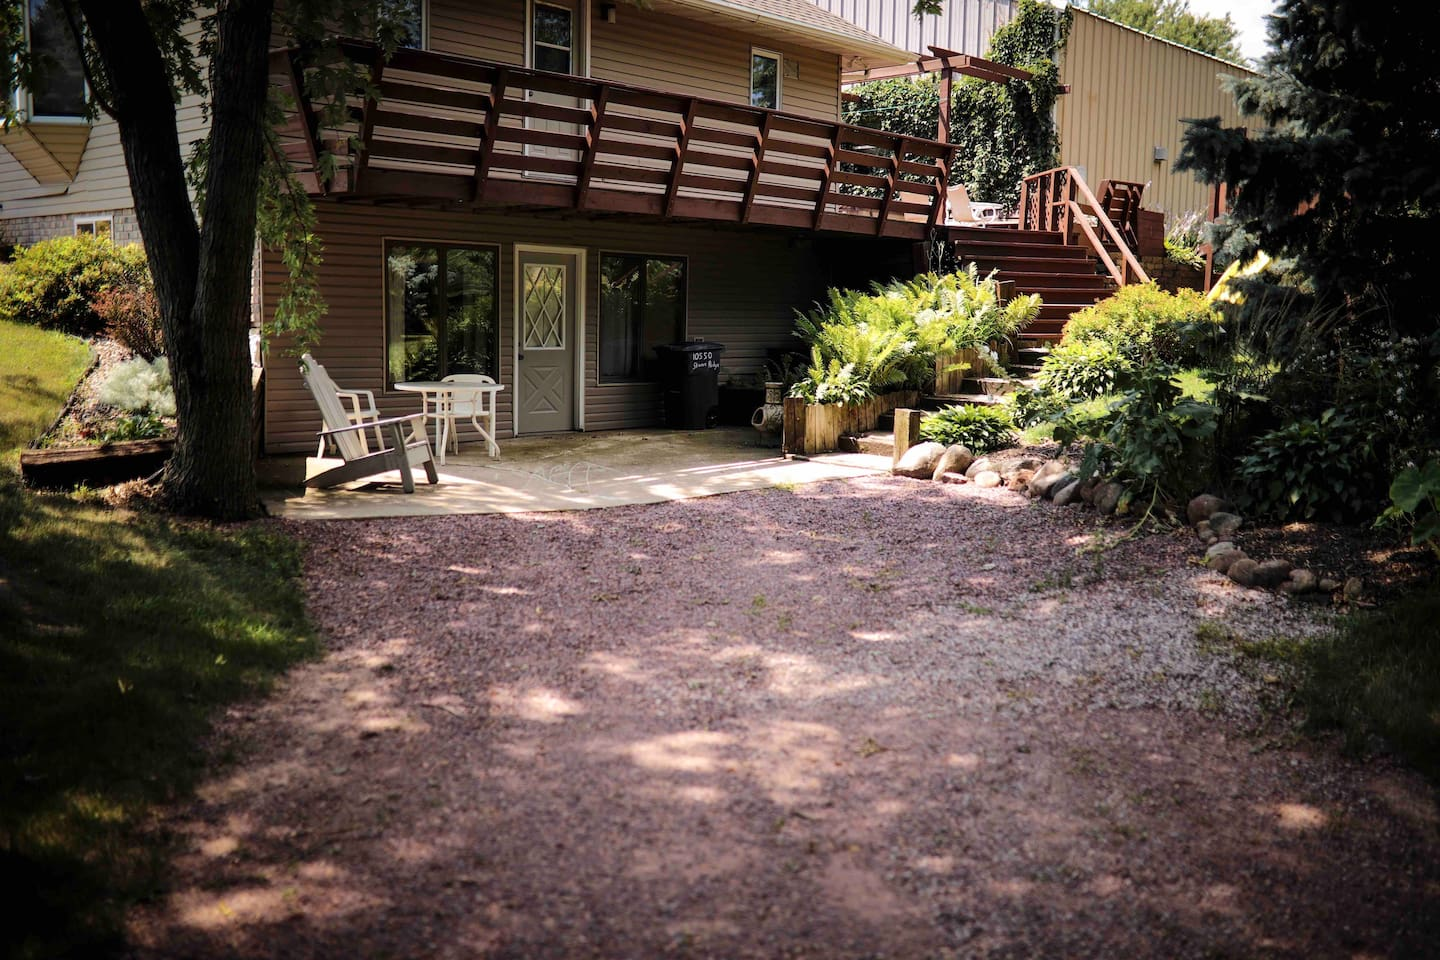 Private, drive up to patio entry to your lower level space.